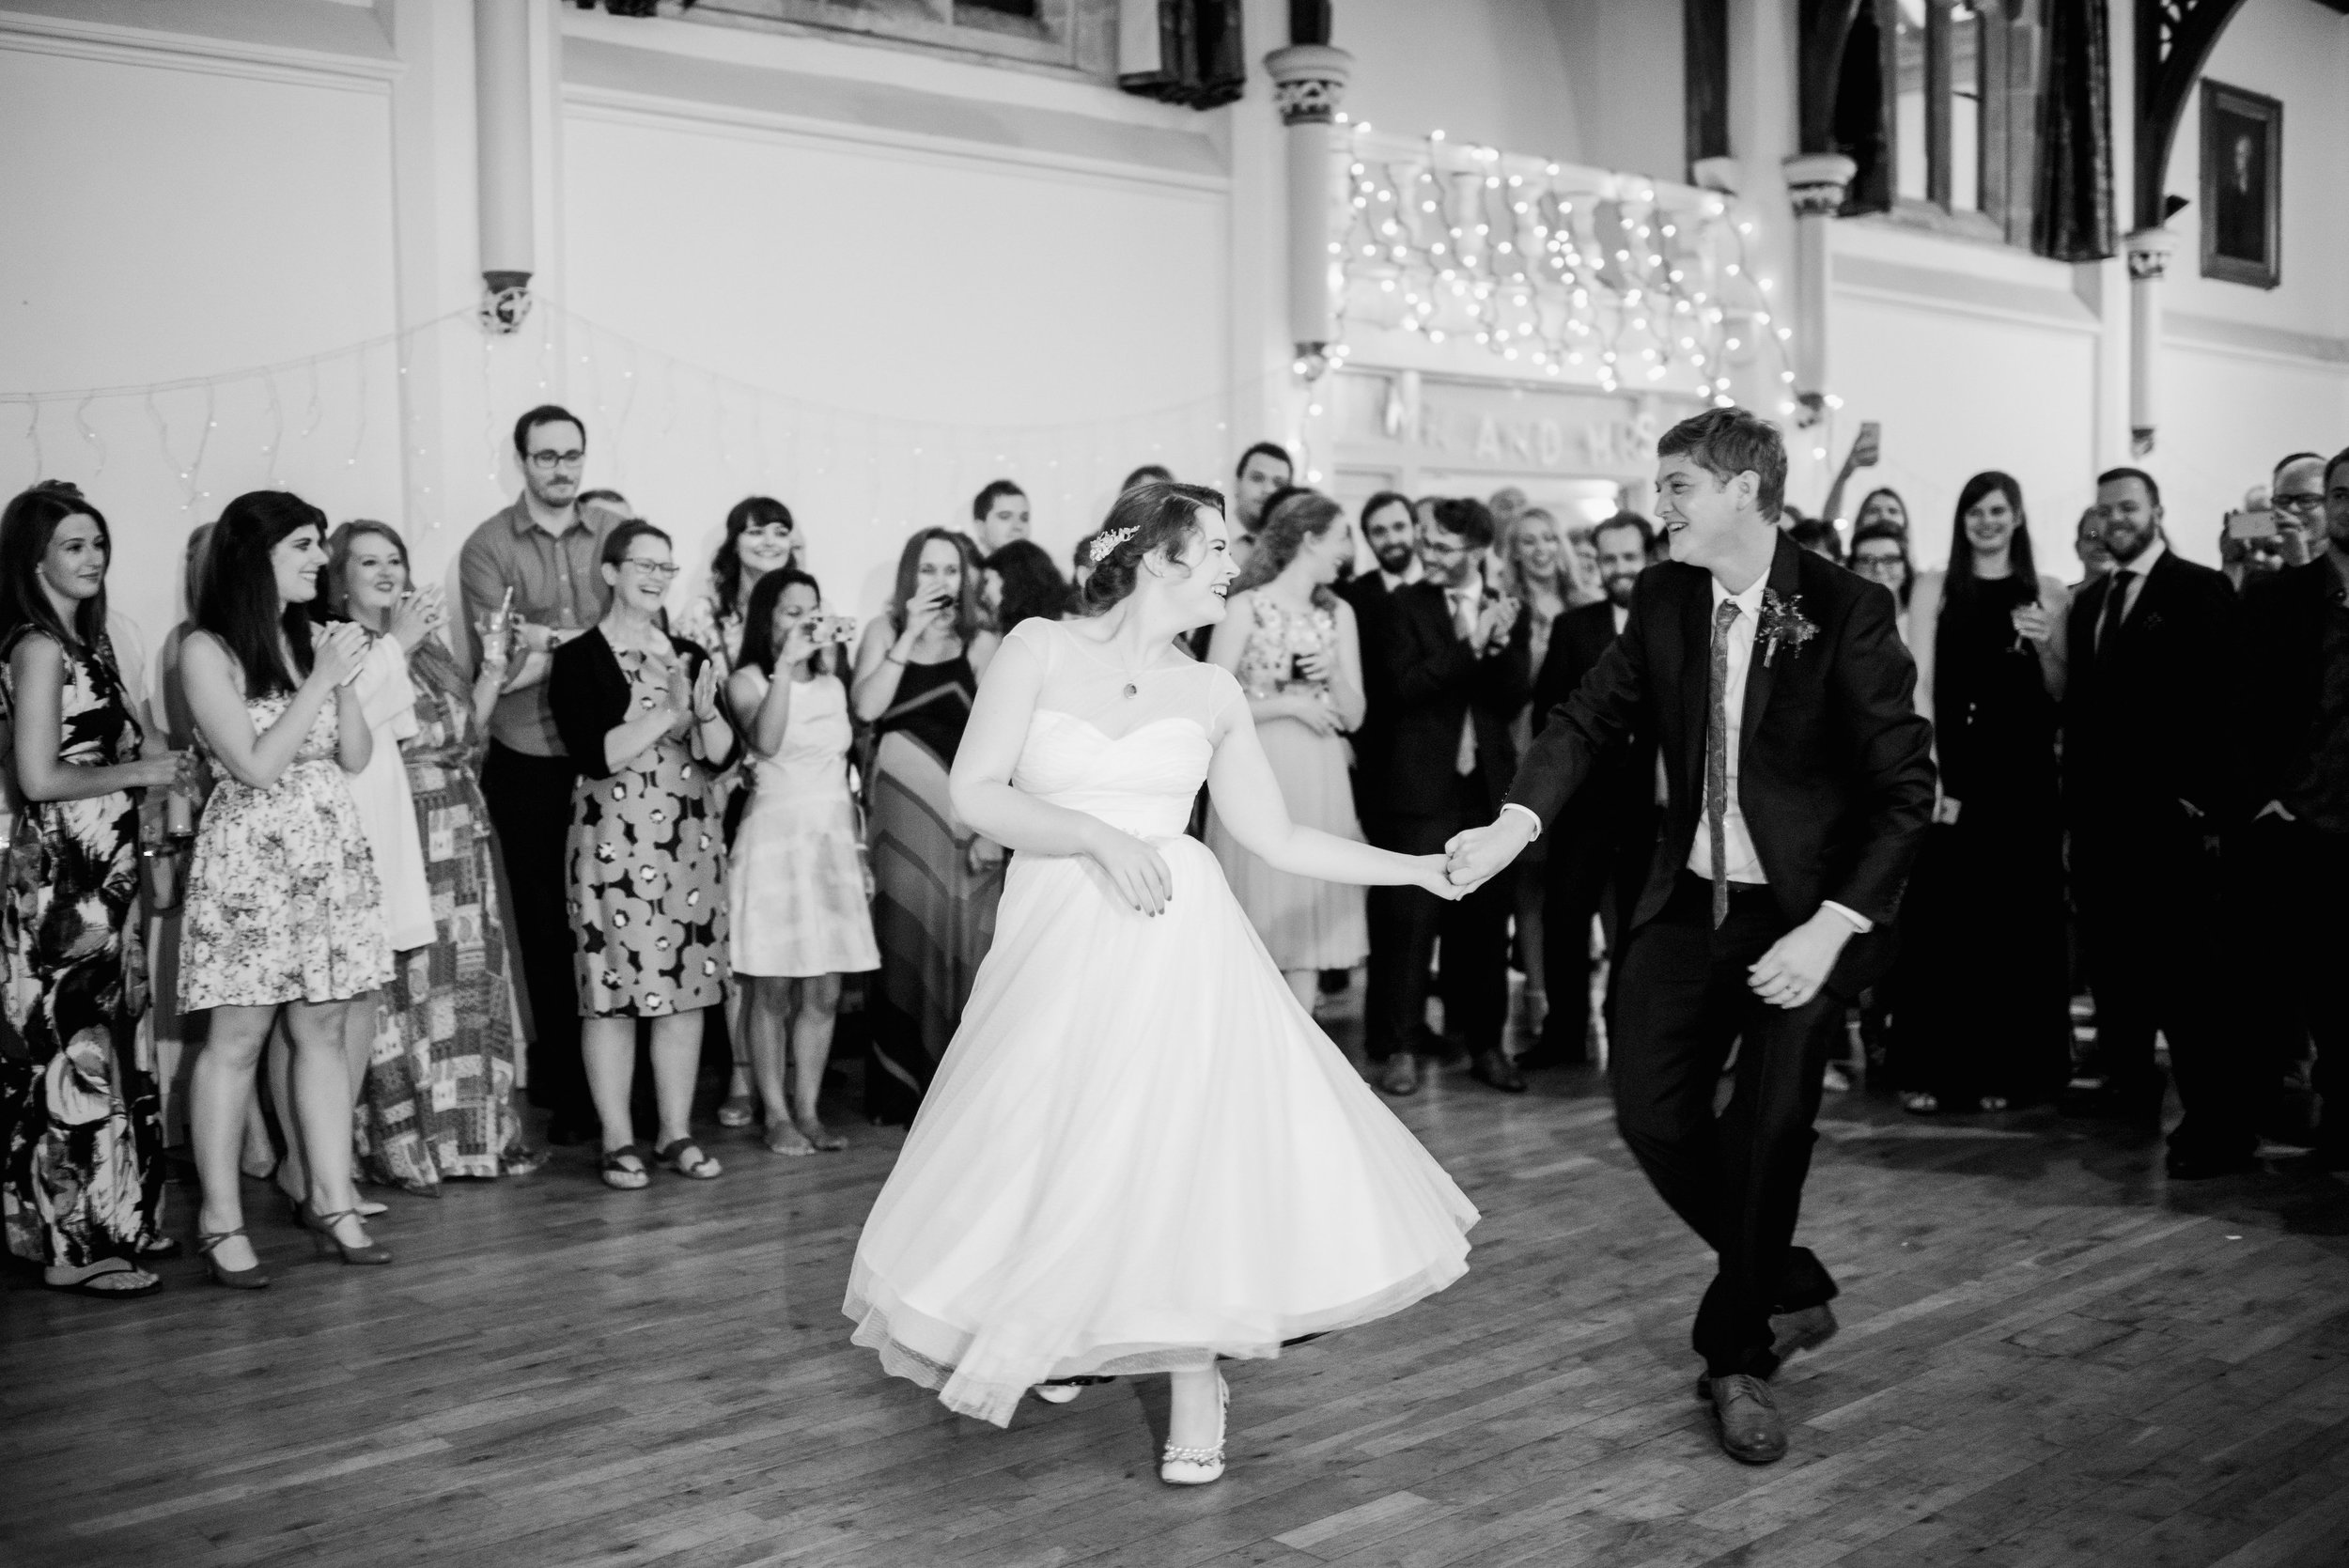 161 Emily + Daniel | Berkhamsted Towhall Wedding London Wedding Photographer Bride Groom Watford.jpg